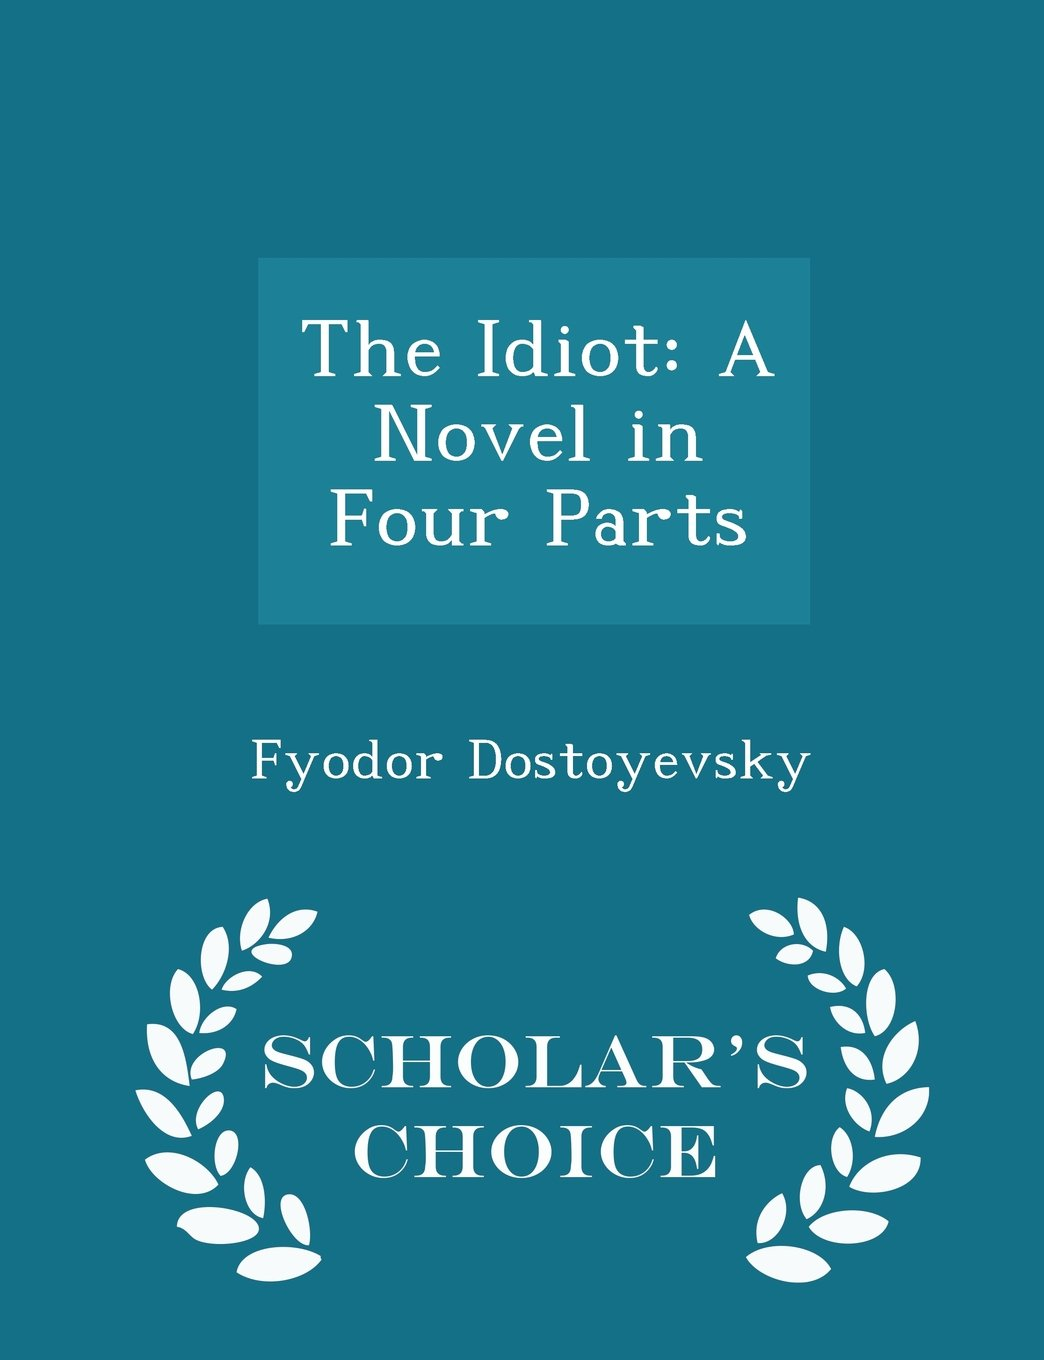 Download The Idiot: A Novel in Four Parts - Scholar's Choice Edition PDF